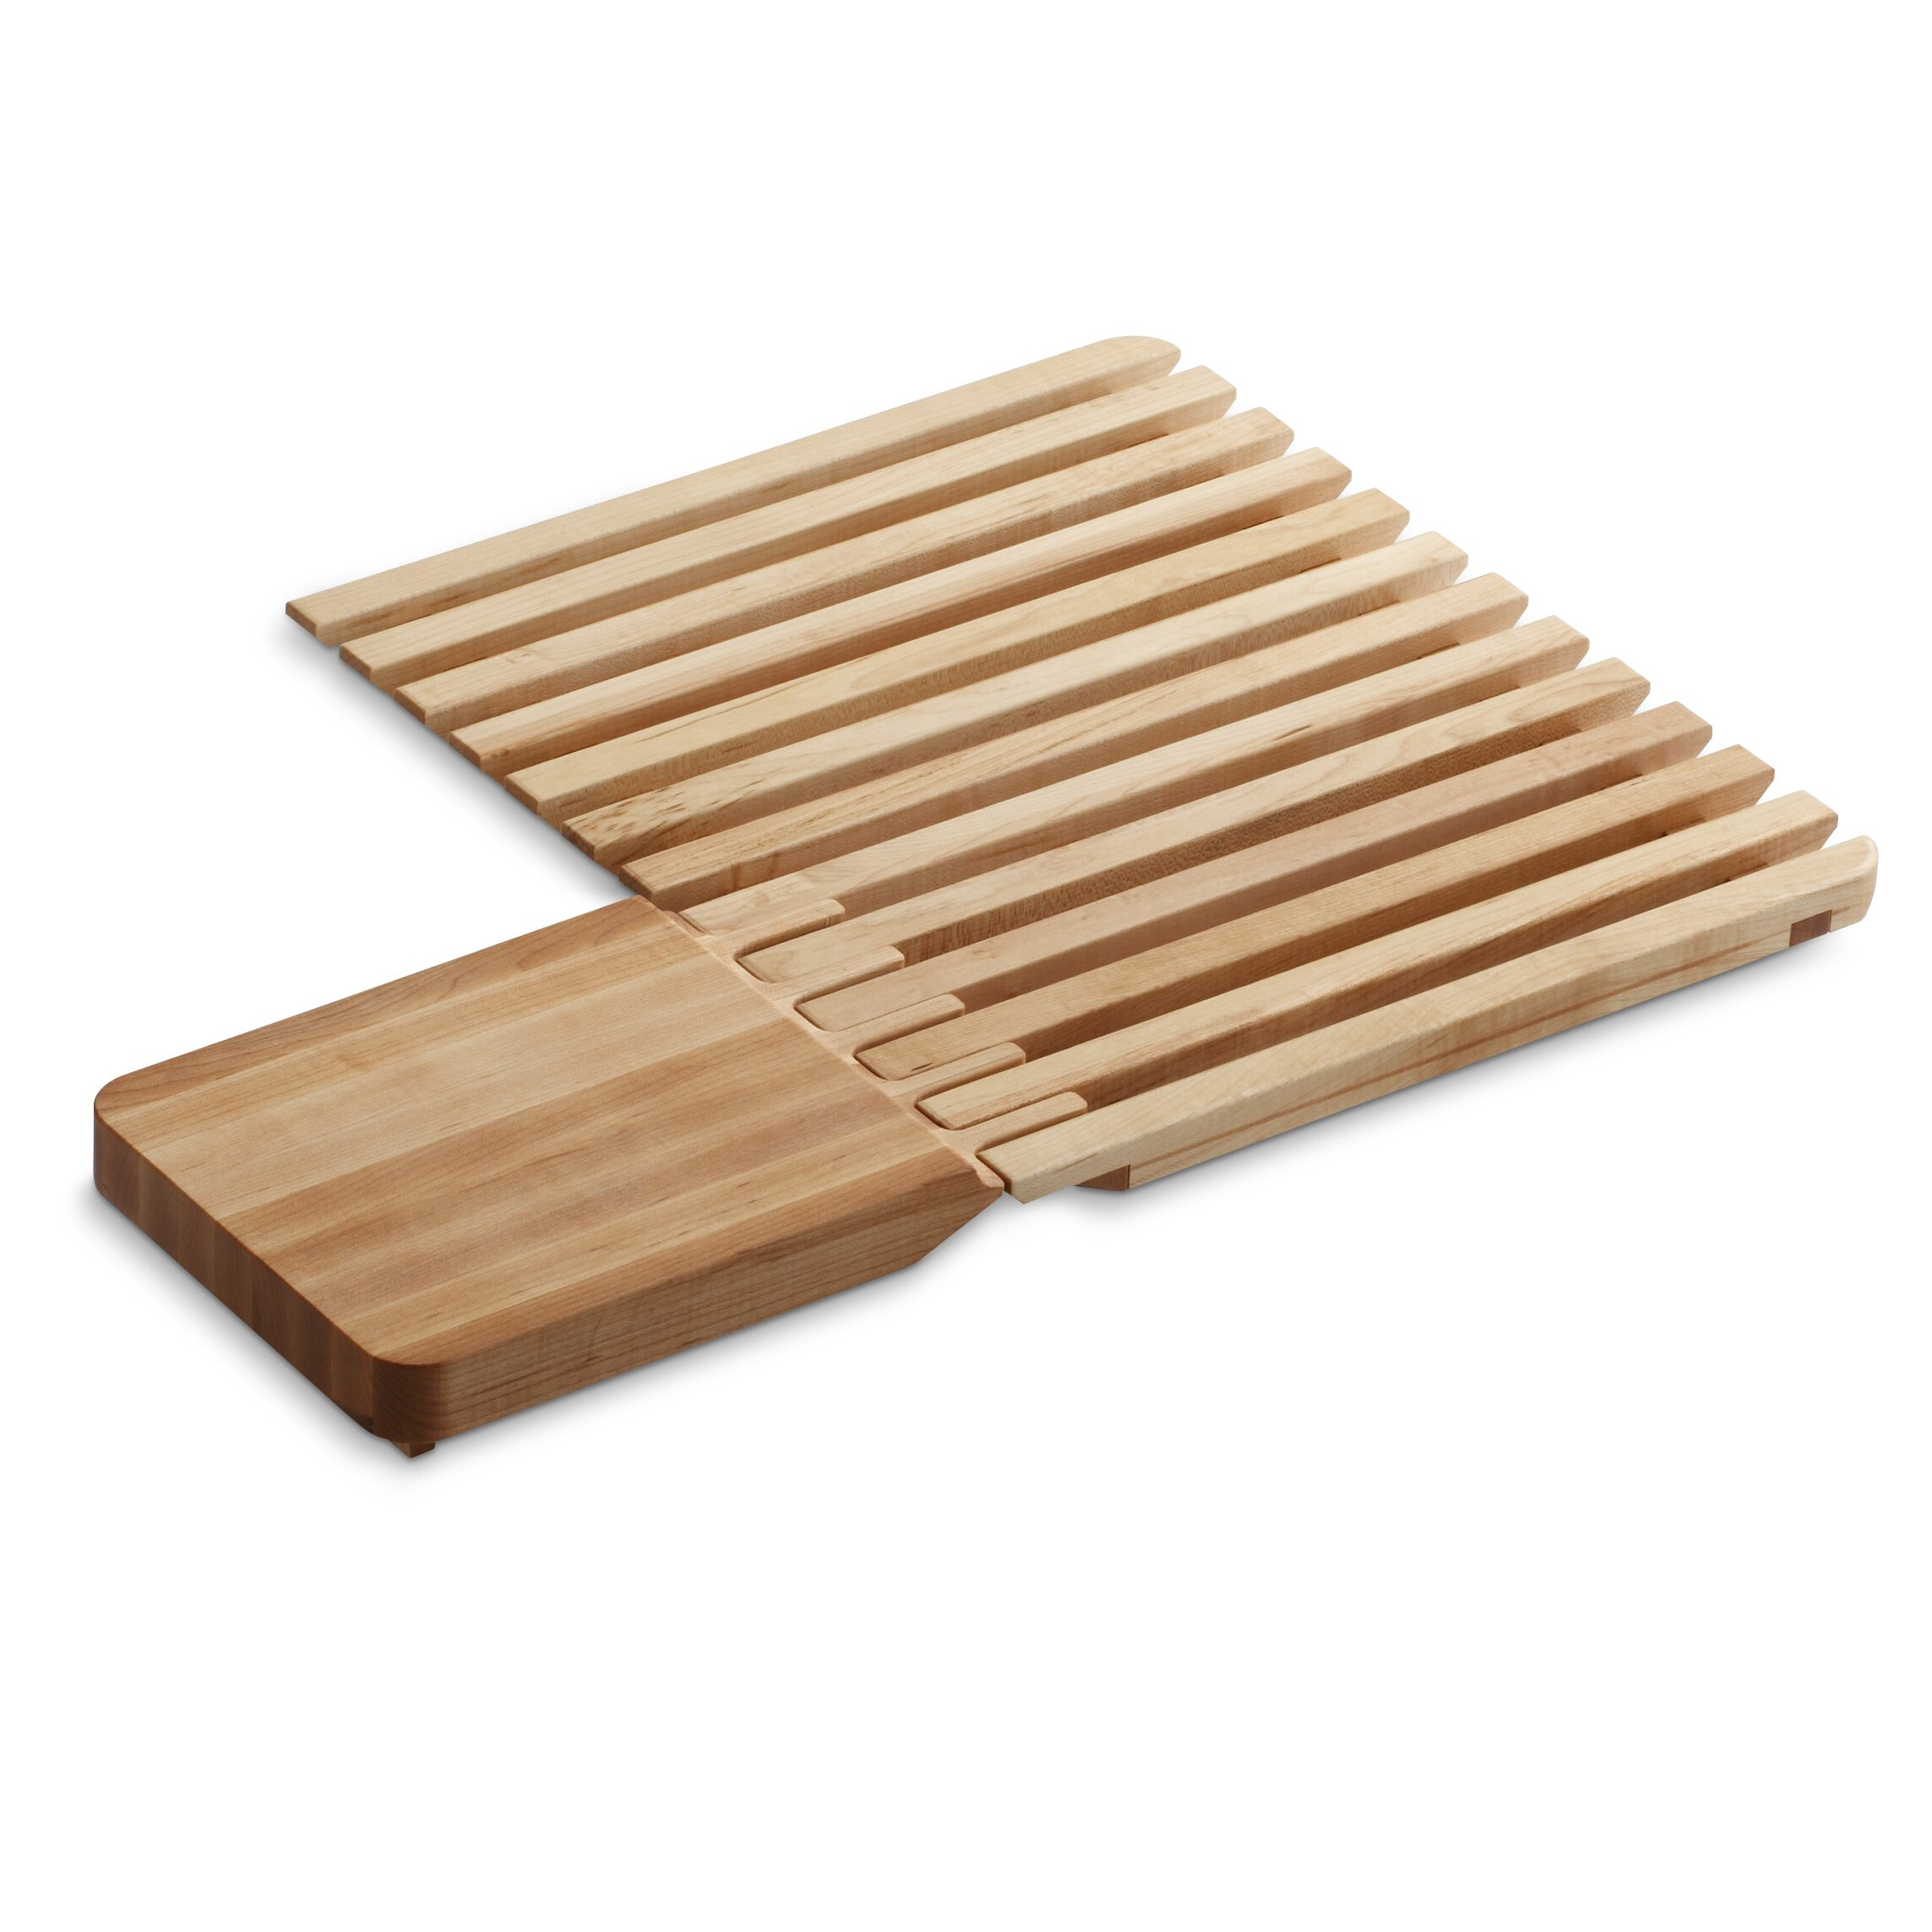 Kohler Epicurean Hardwood Cutting Board And Drain Board